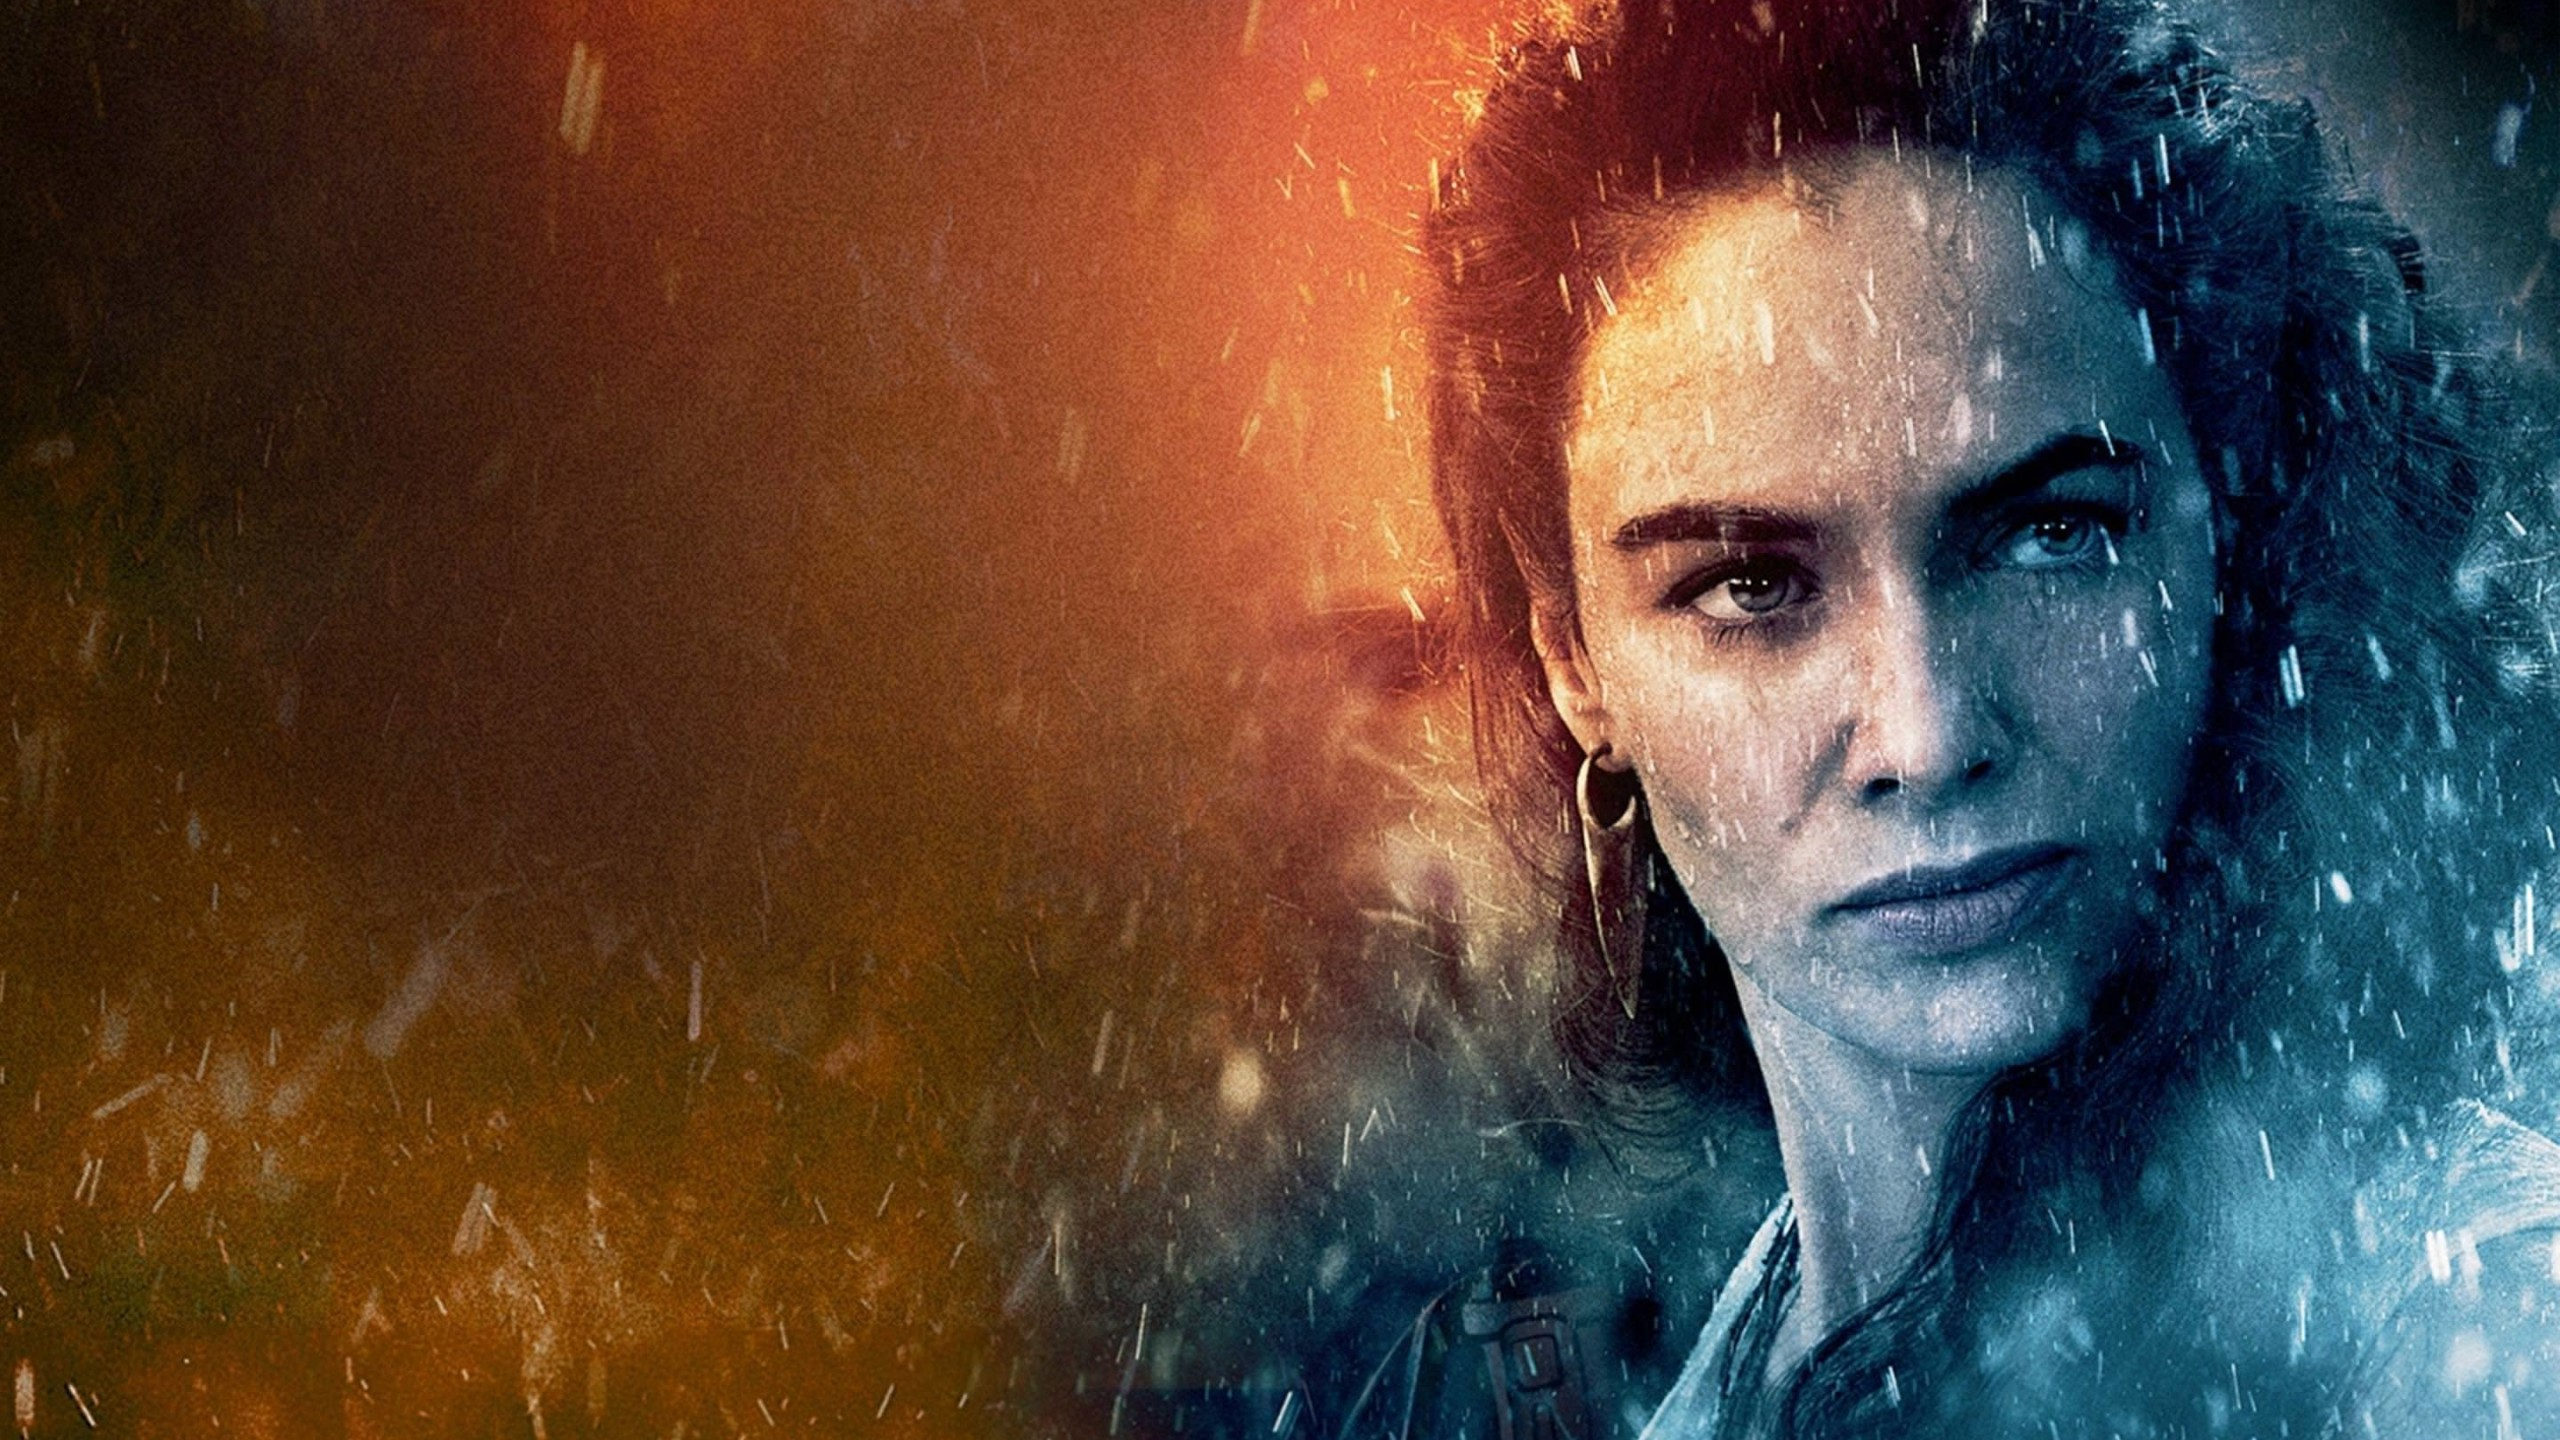 Lena Headey in 300 Rise Of An Empire Wallpaper for Social Media YouTube Channel Art